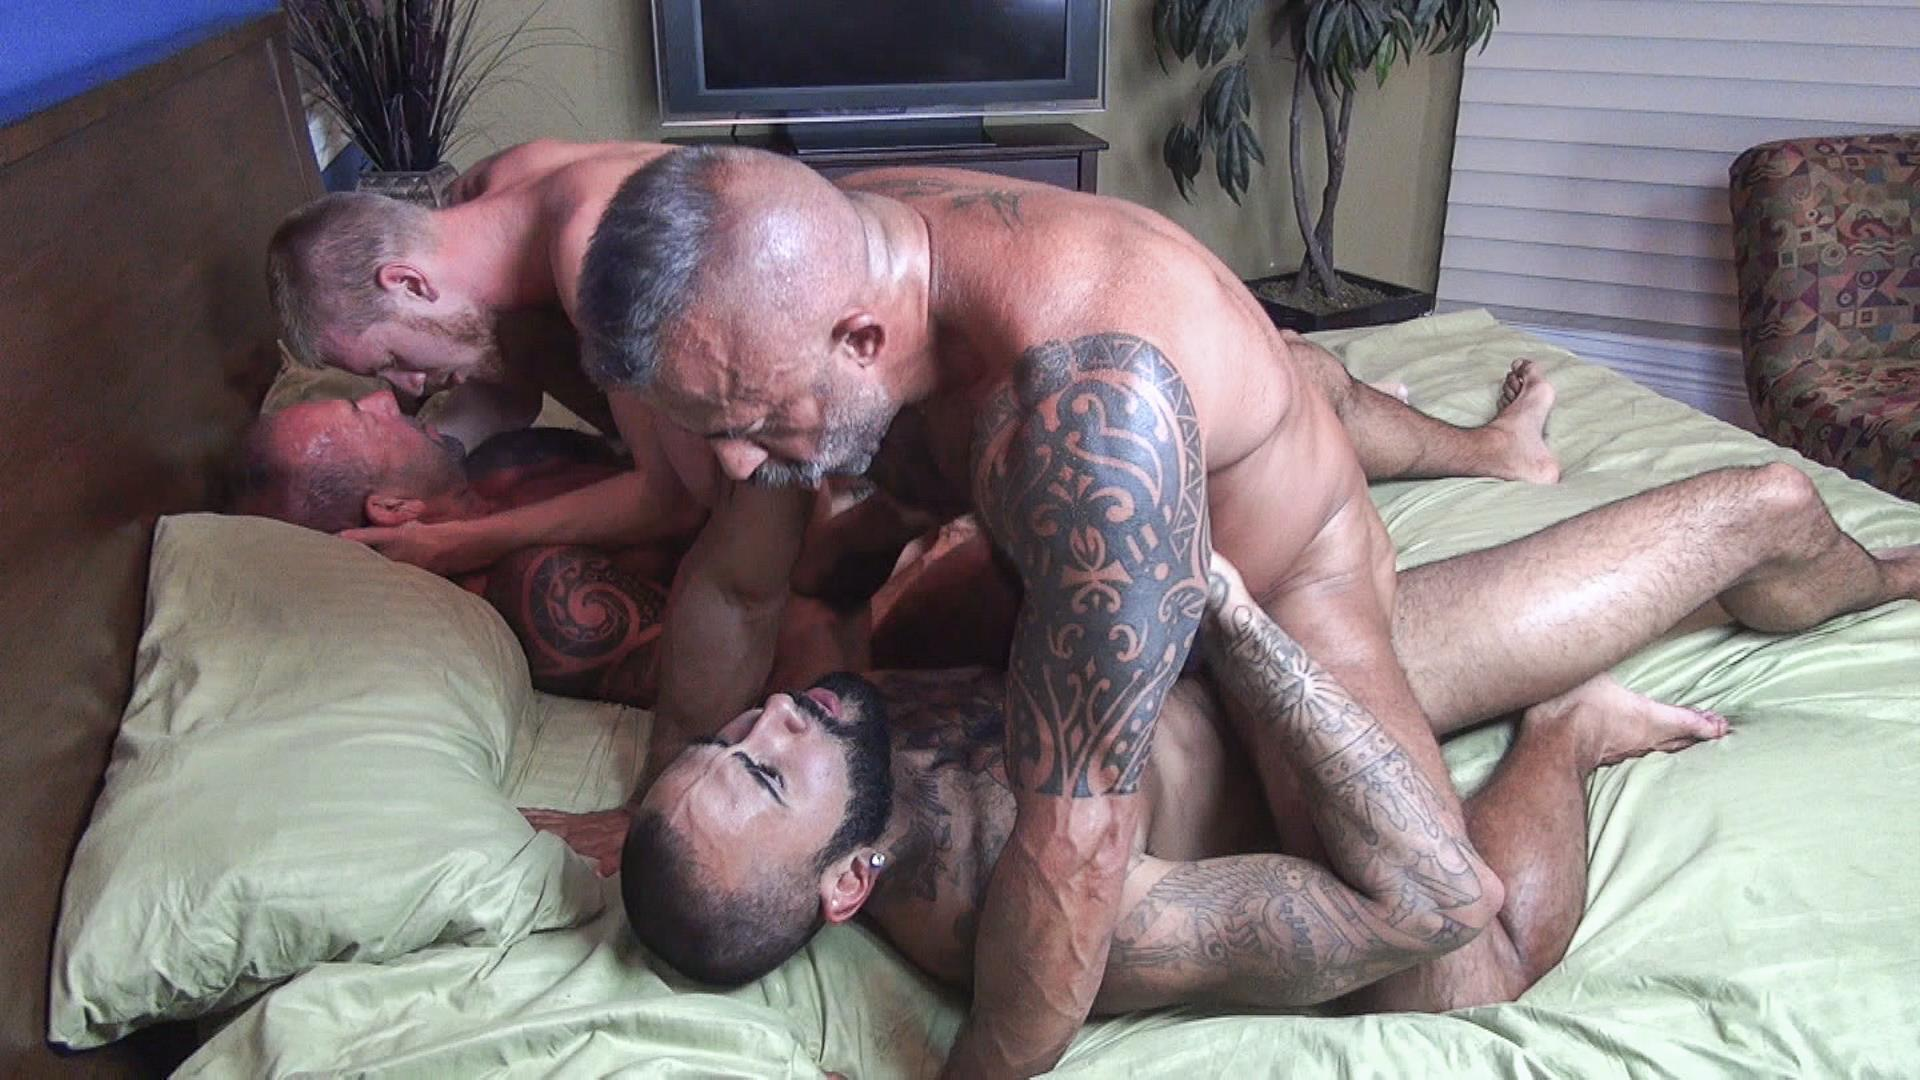 Raw-Fuck-Club-Vic-Rocco-and-Rikk-York-and-Billy-Warren-and-Job-Galt-Bareback-Daddy-Amateur-Gay-Porn-12 Four Hairy Muscle Daddies In A Bareback Fuck Fest Orgy